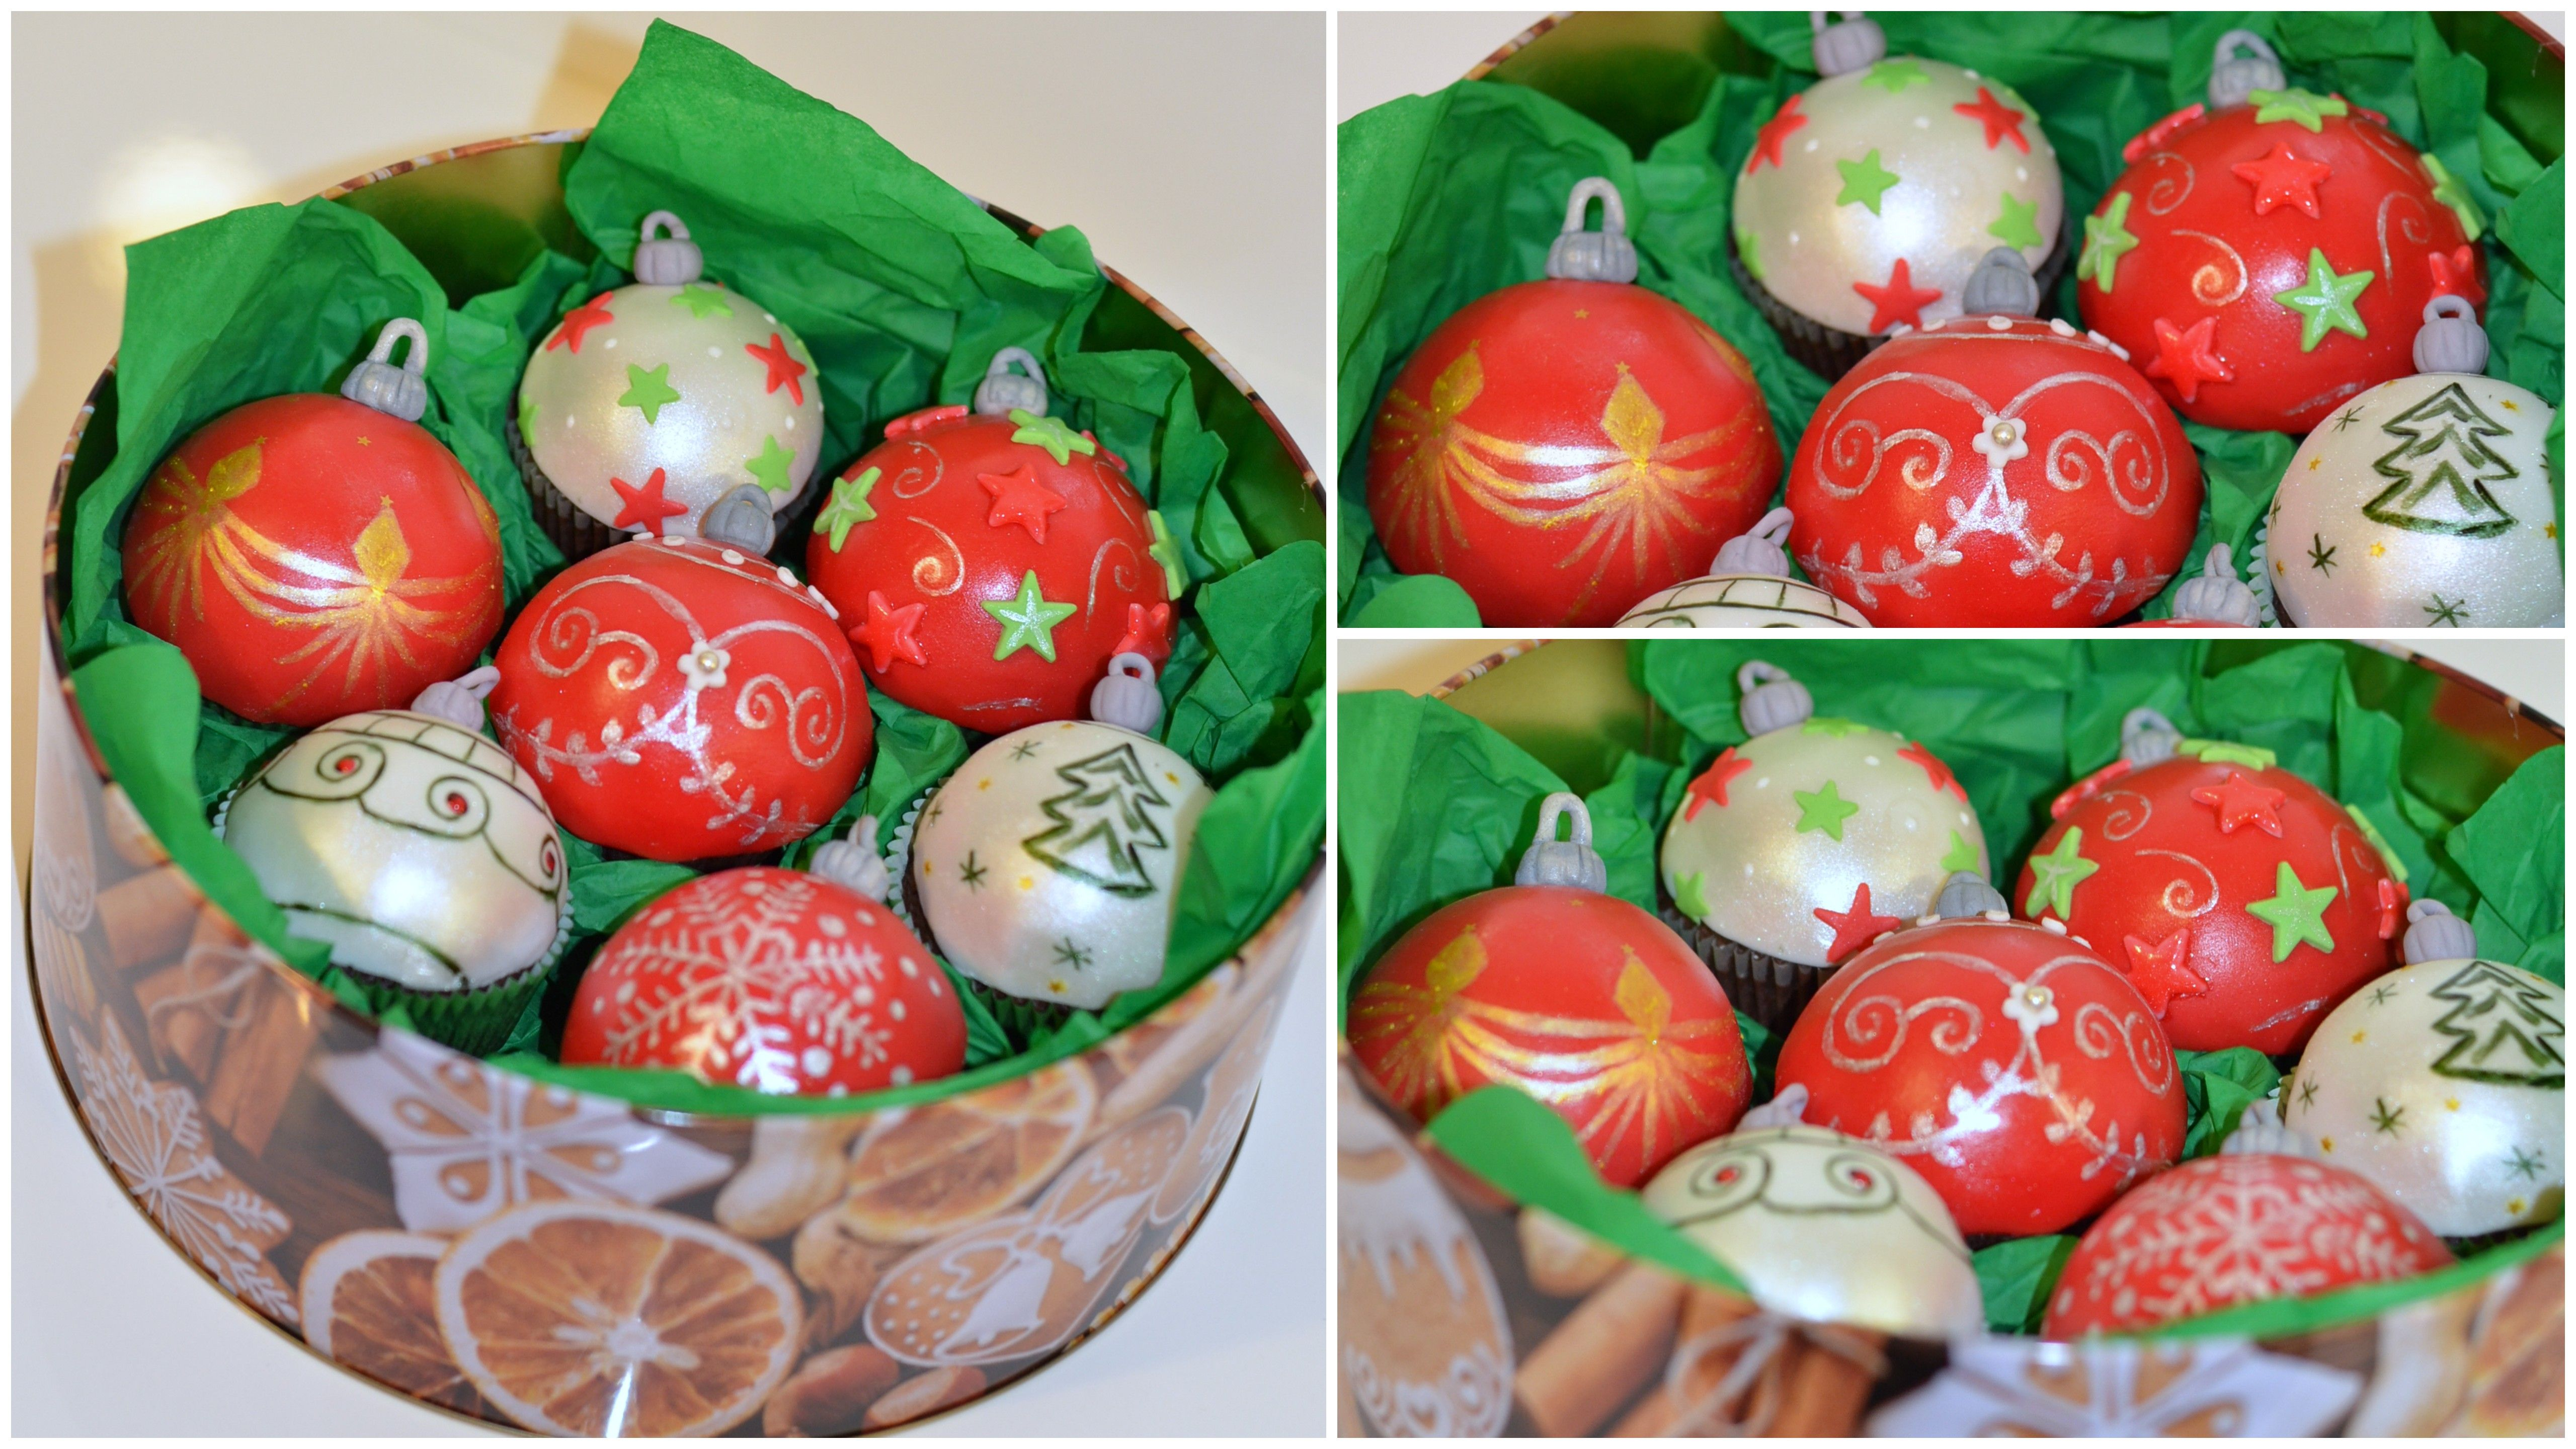 Christmas sweet gift box with cupcakes